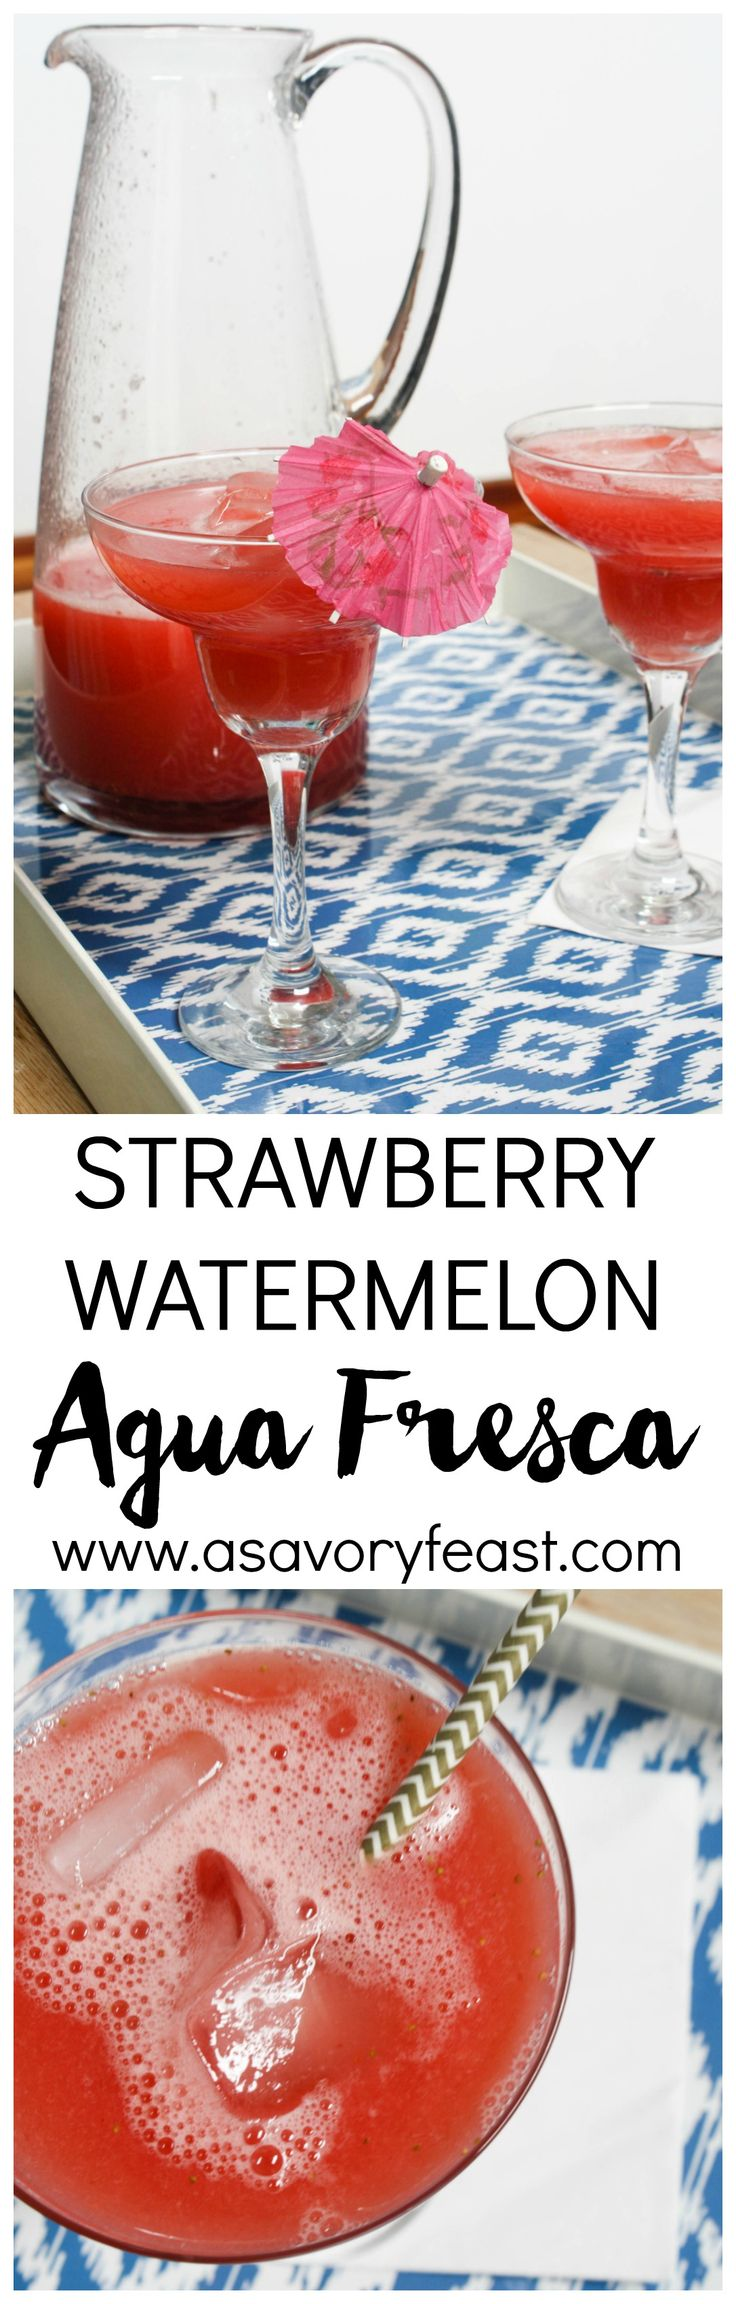 ... Strawberry Watermelon Agua Fresca is a delicious drink for all ages